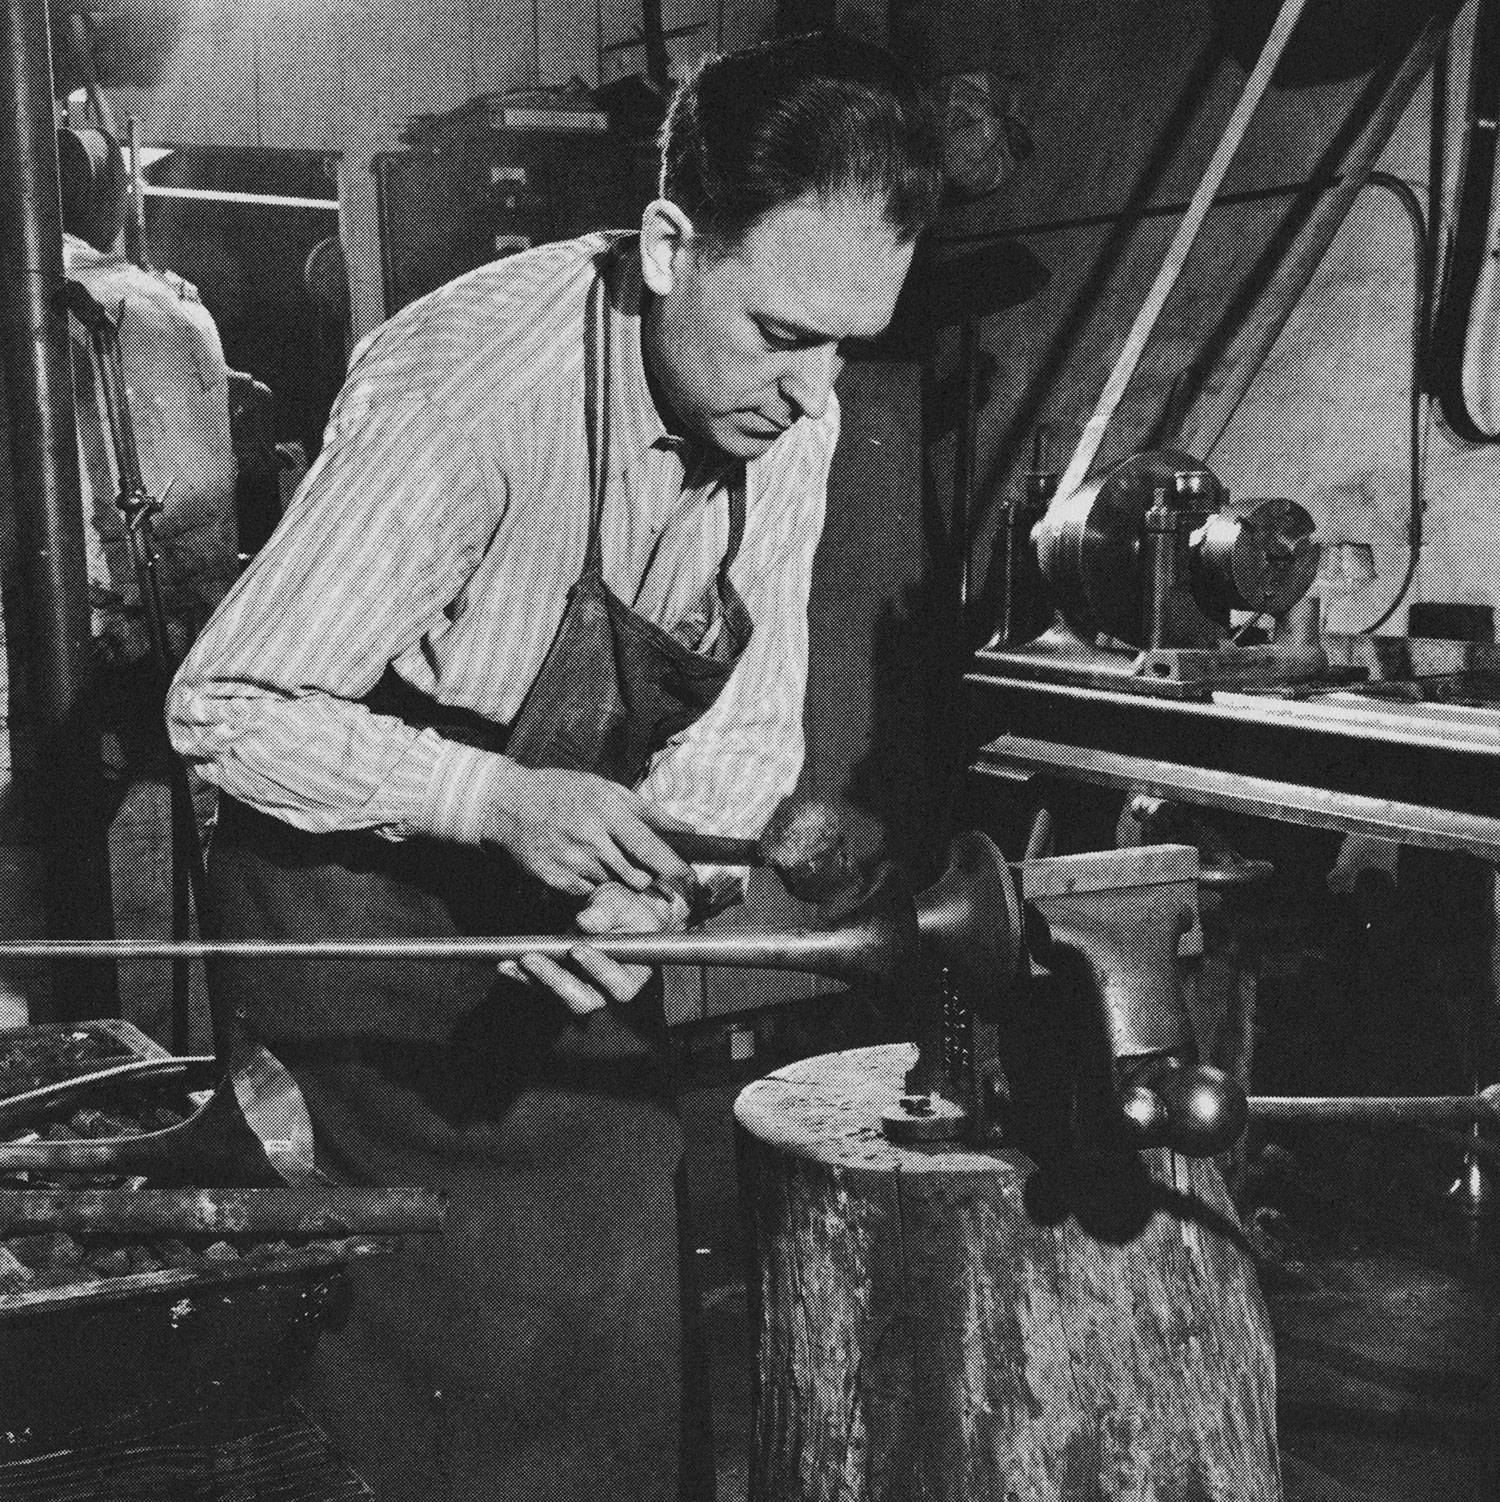 - Elden Benge hand-hammering a bell in his Burbank, California factory in 1954.Principal trumpet of the Detroit Symphony Orchestra from 1928–1933, and the Chicago Symphony Orchestra from 1933–1939, Benge began building his own trumpets in Chicago, based on measurements from his personal French Besson. He moved his factory to Burbank in 1953.